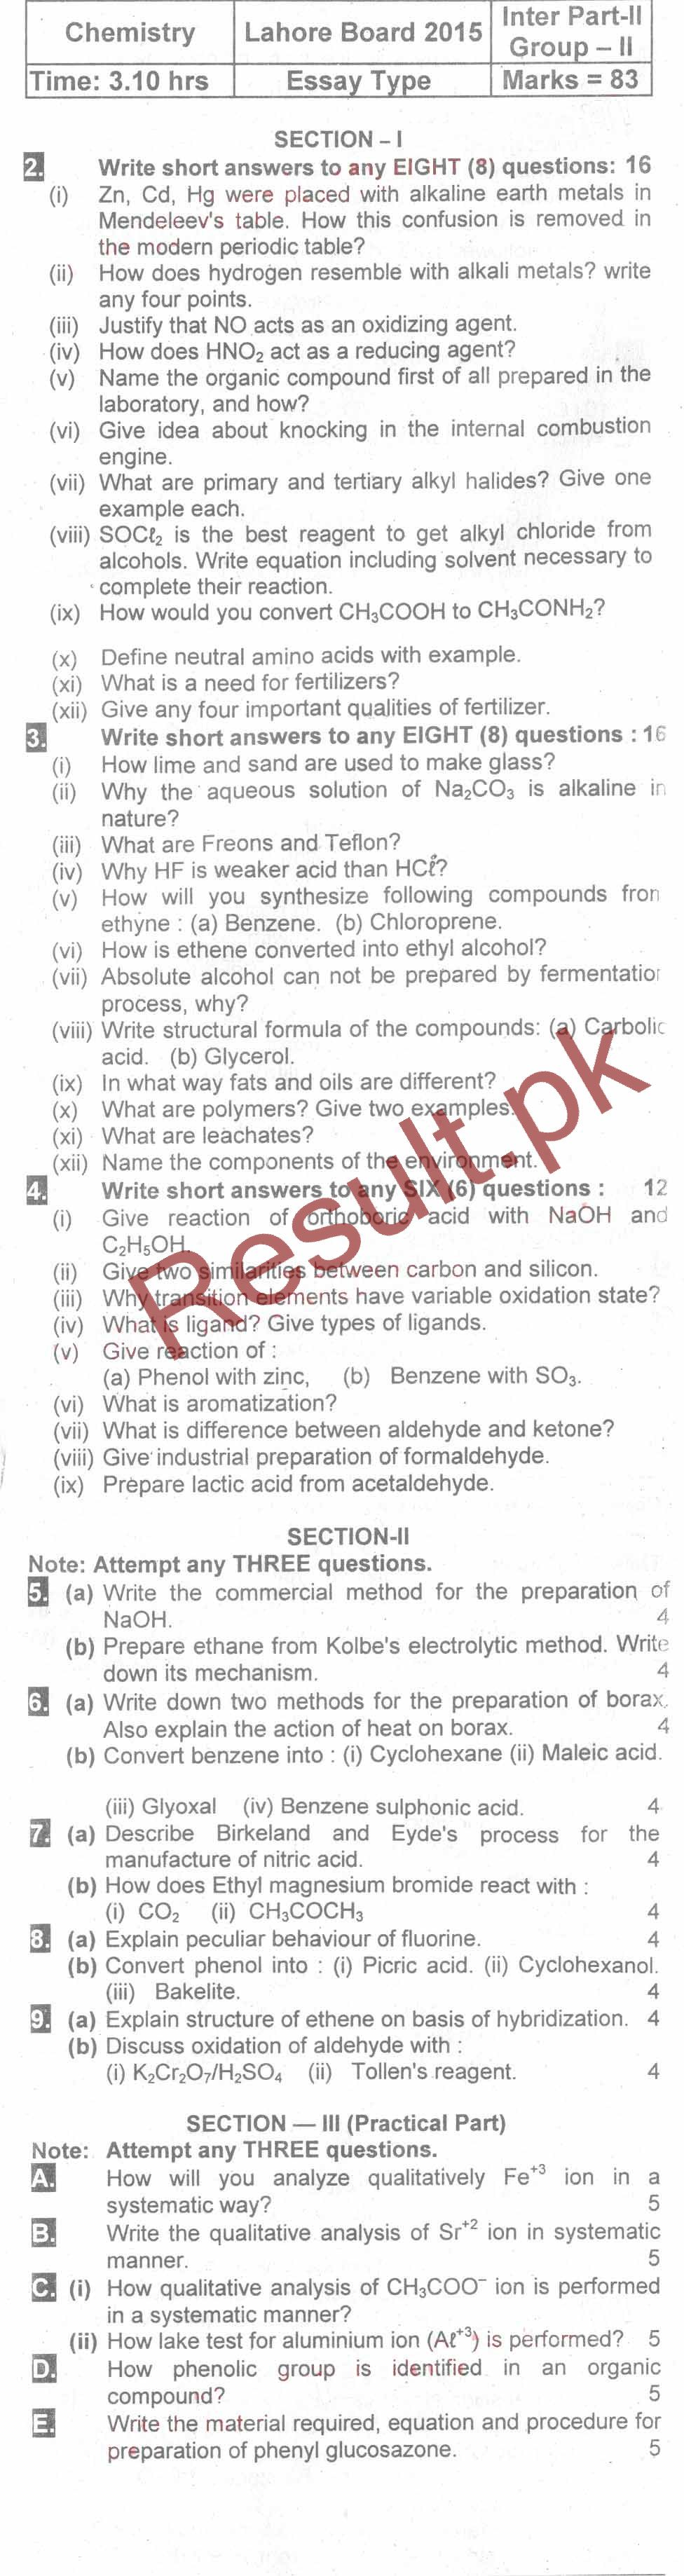 intermediate question paper For ipcc may 2018 students download icai ca ipcc and ca intermediate may 2018 question papers with suggested answers, icai ipcc may 2018 mock test papers with solutions along with last 10 attempts question papers, suggested answer keys, mock test papers and revision test papers in pdf for ca intermediate may 2018.